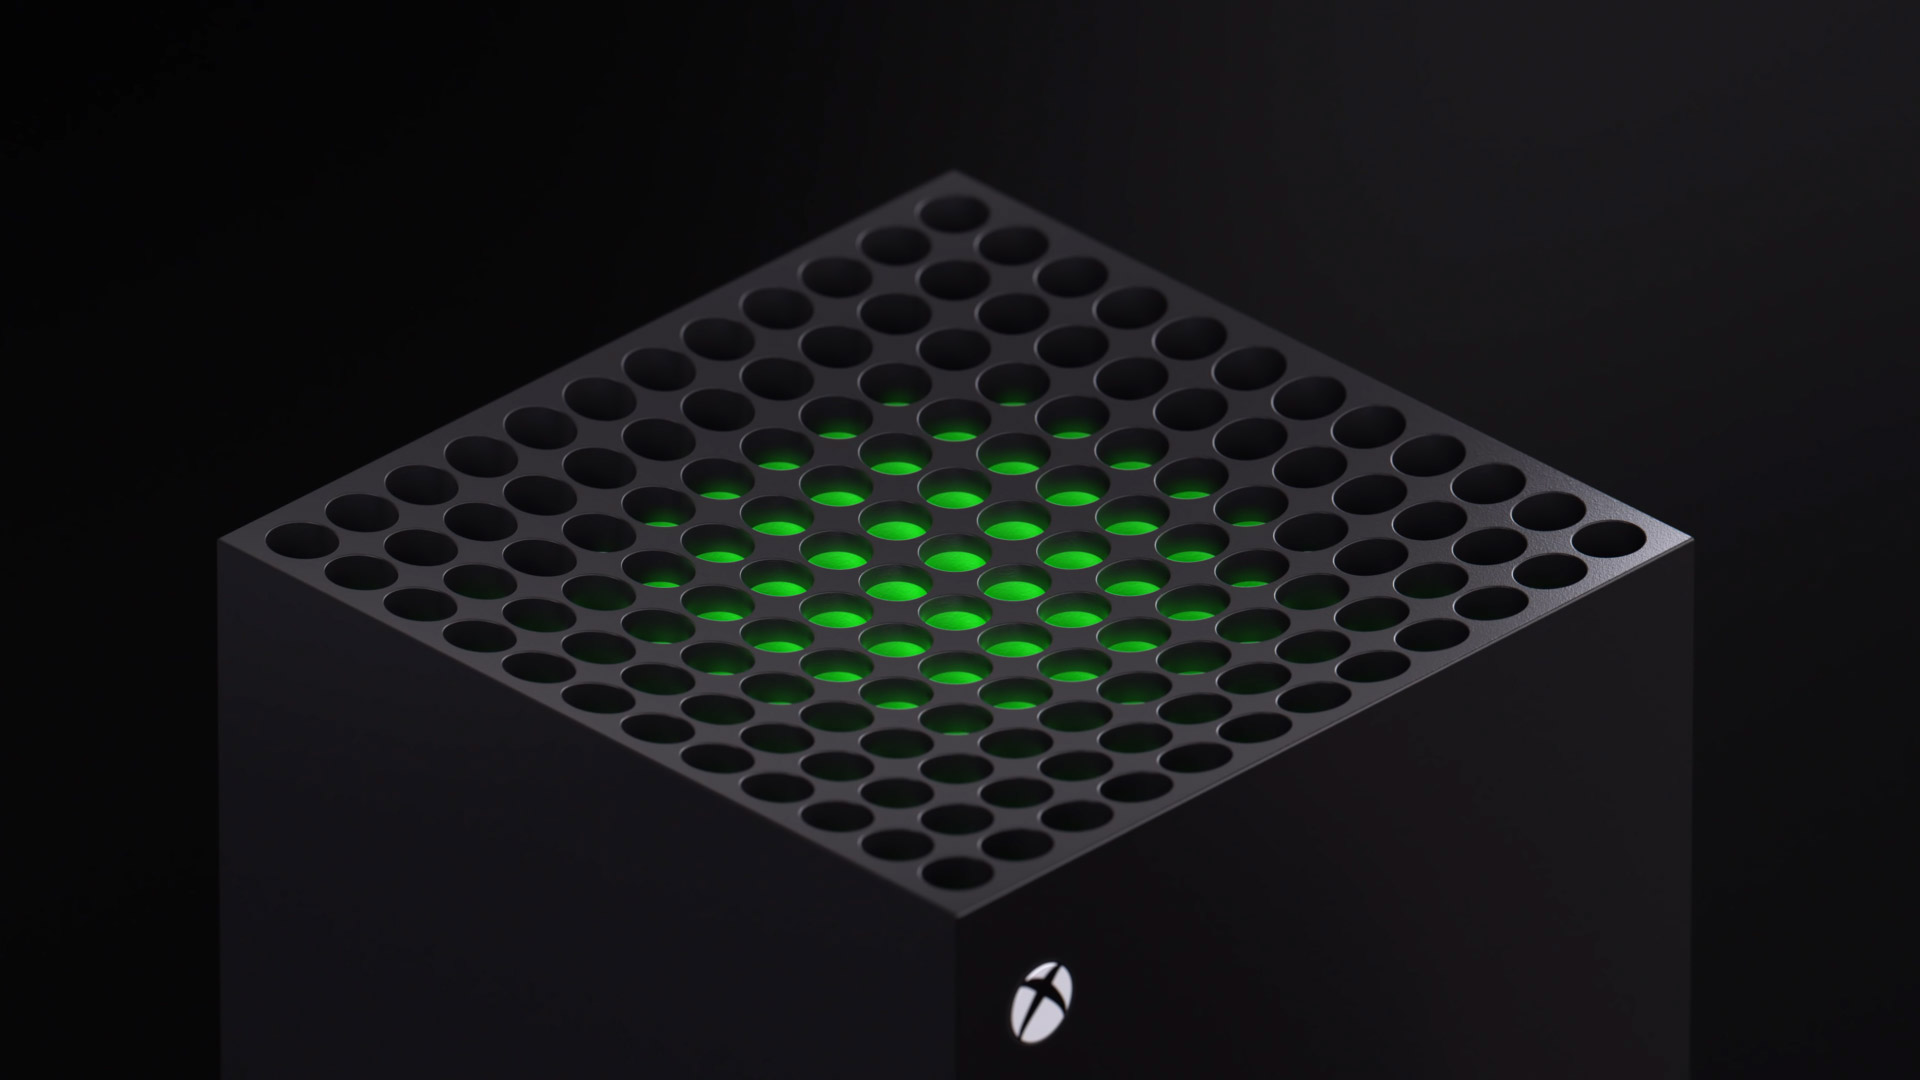 You'll have to break the Xbox Series X's stand if you want to take it off screenshot